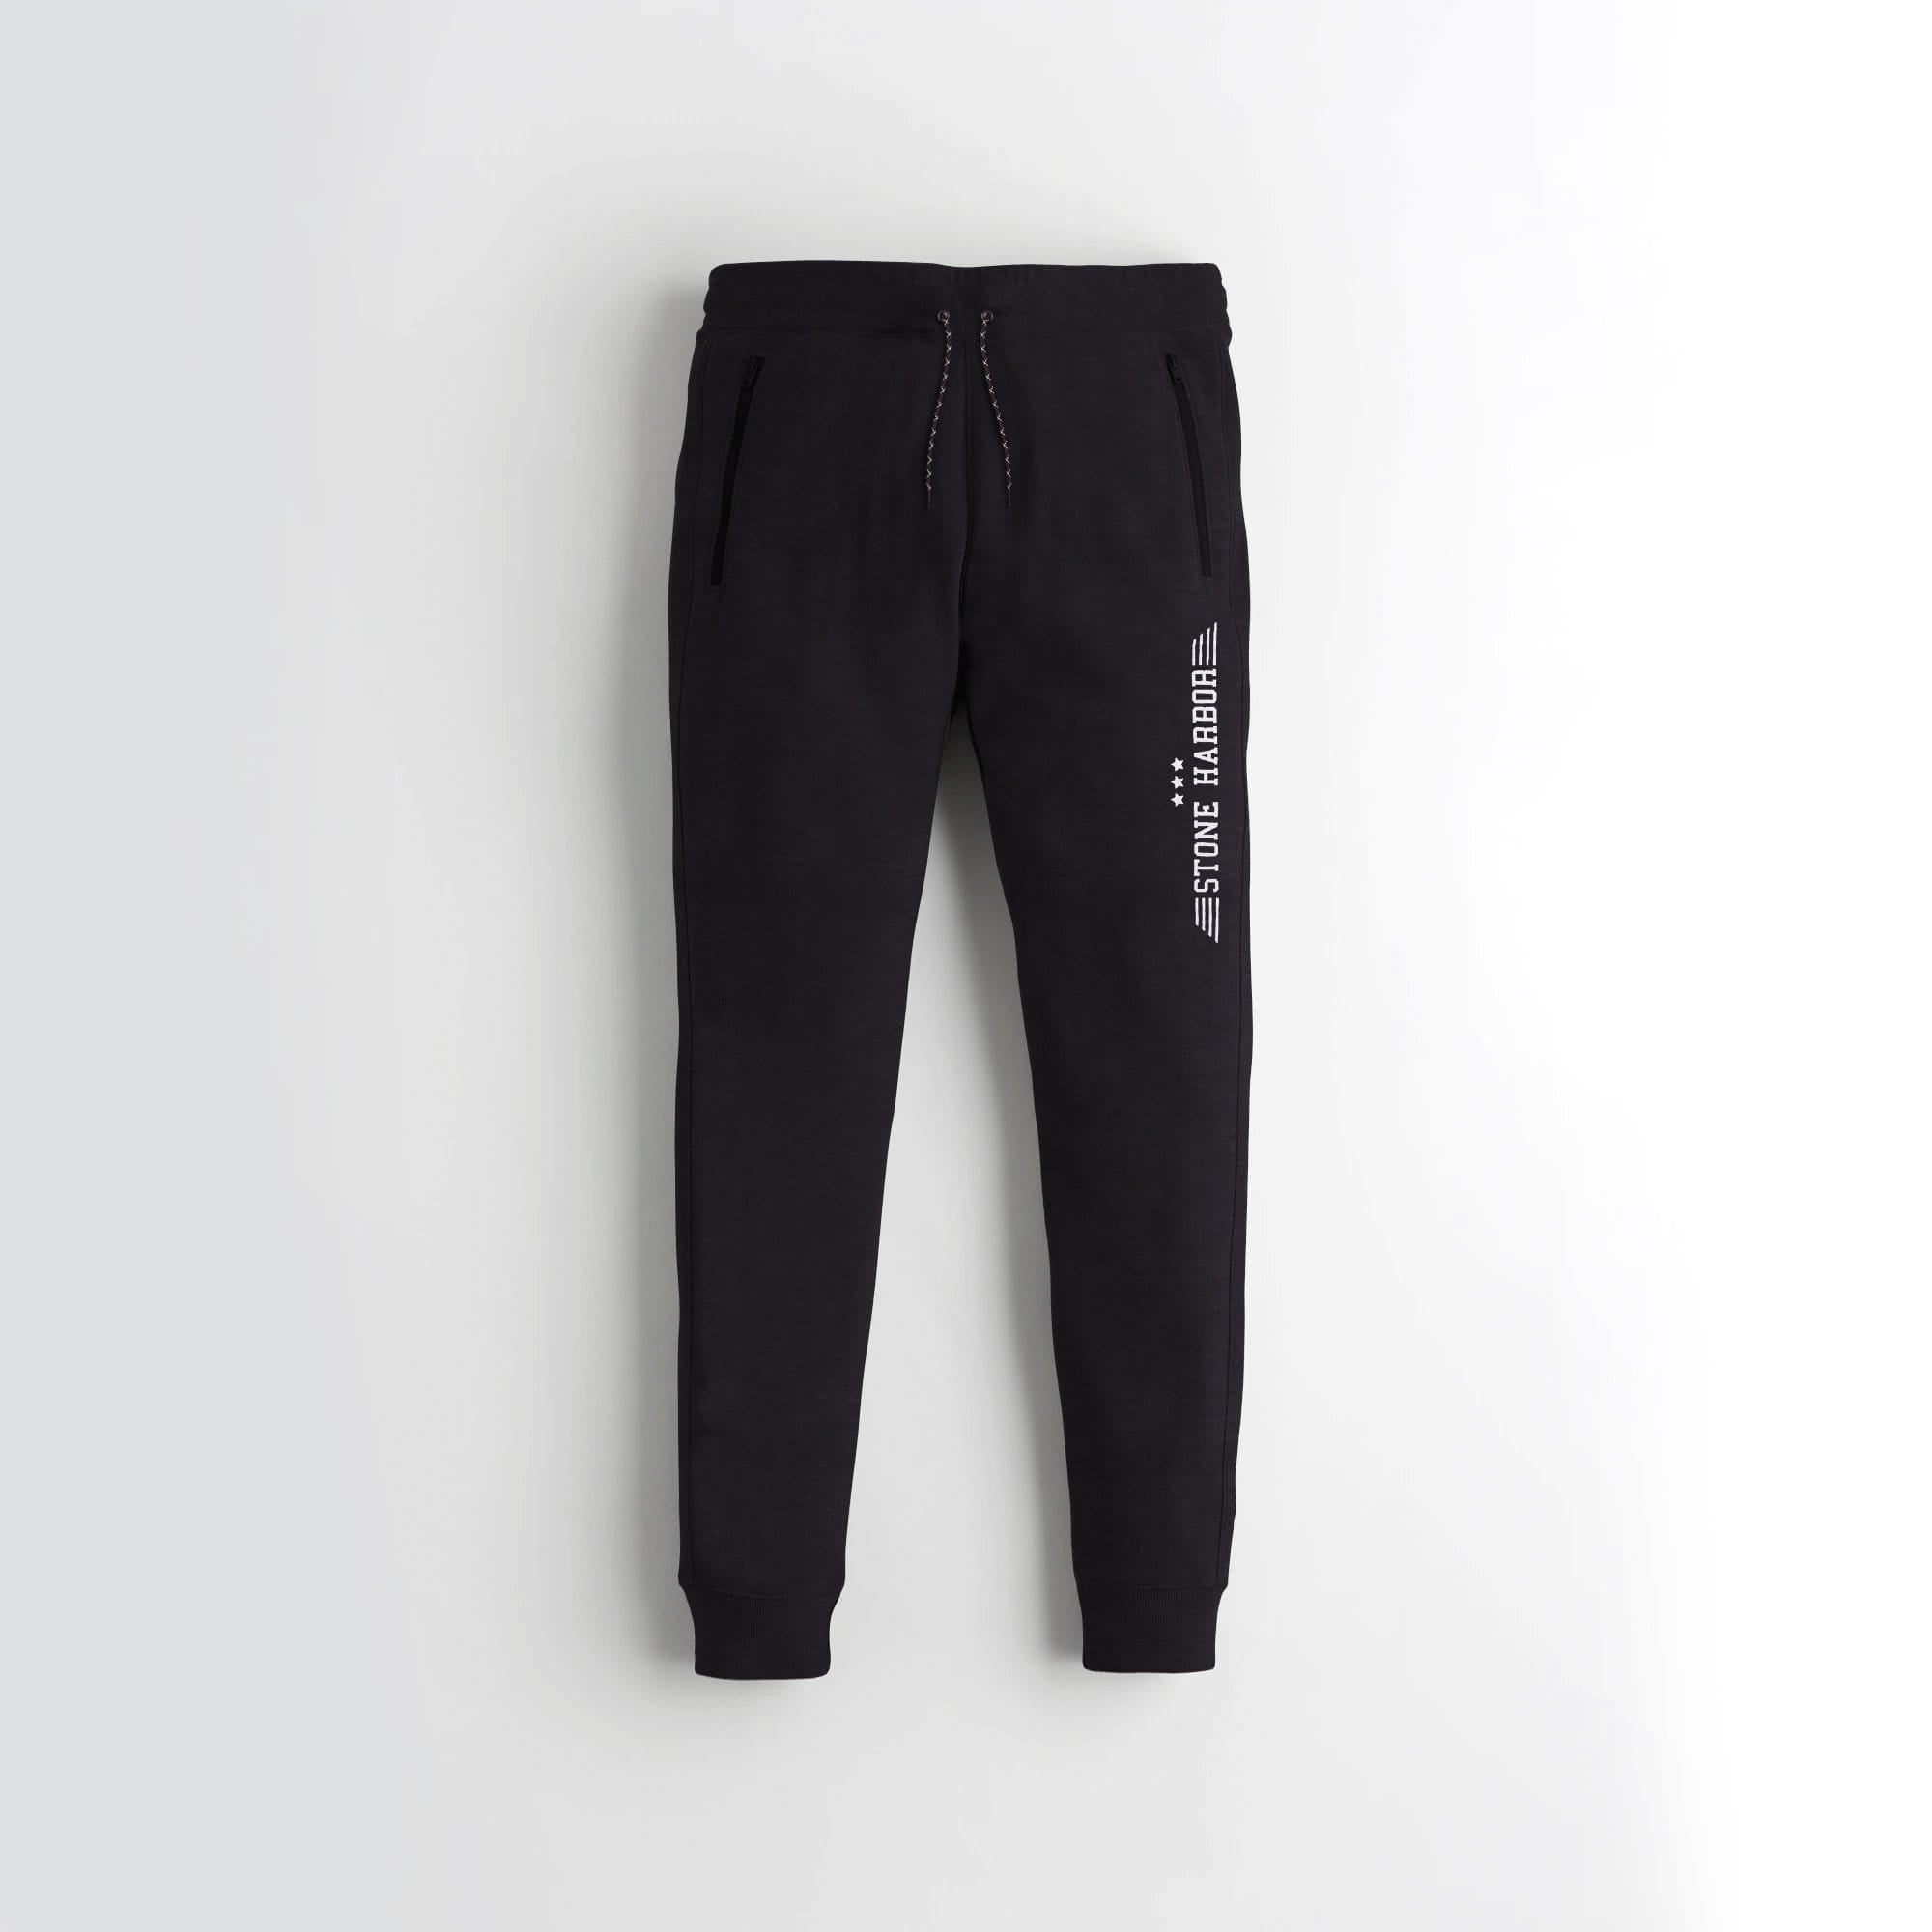 Stone Harbor Men's Sweat Pants Black / S Men's Stone Harbor Soft Black Sweat Pants